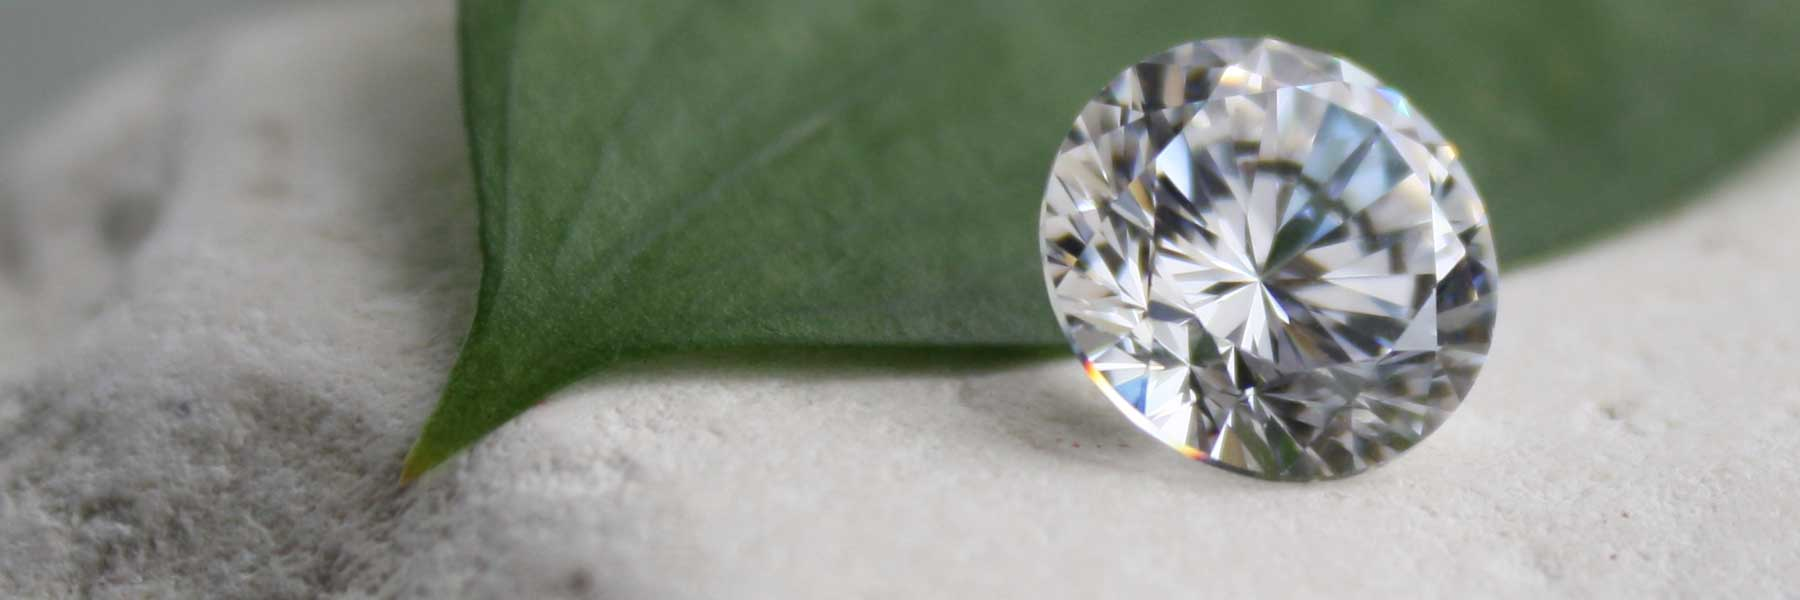 Affordable man made diamonds by Quorri in Canada